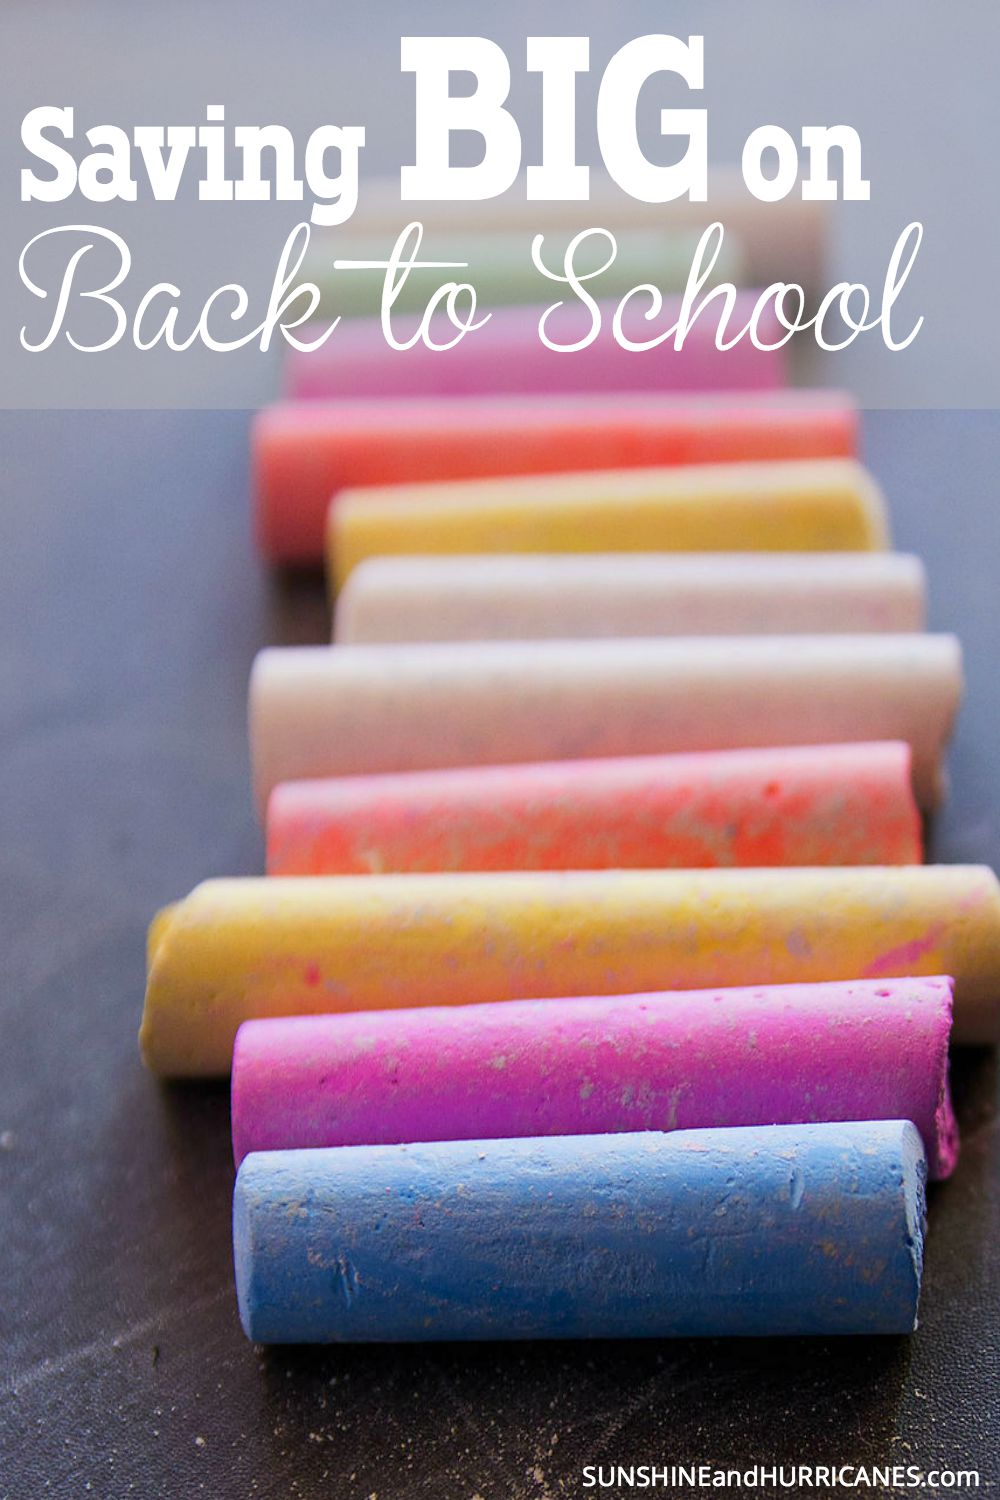 Binders, Backpacks, and Books Oh My! Looking for ways to save on all those BIG back to school shopping expenses? We've got all the inside scoop on ways to keep back to school from breaking the bank. Saving BIG on Back to School. SunshineandHurricanes.com